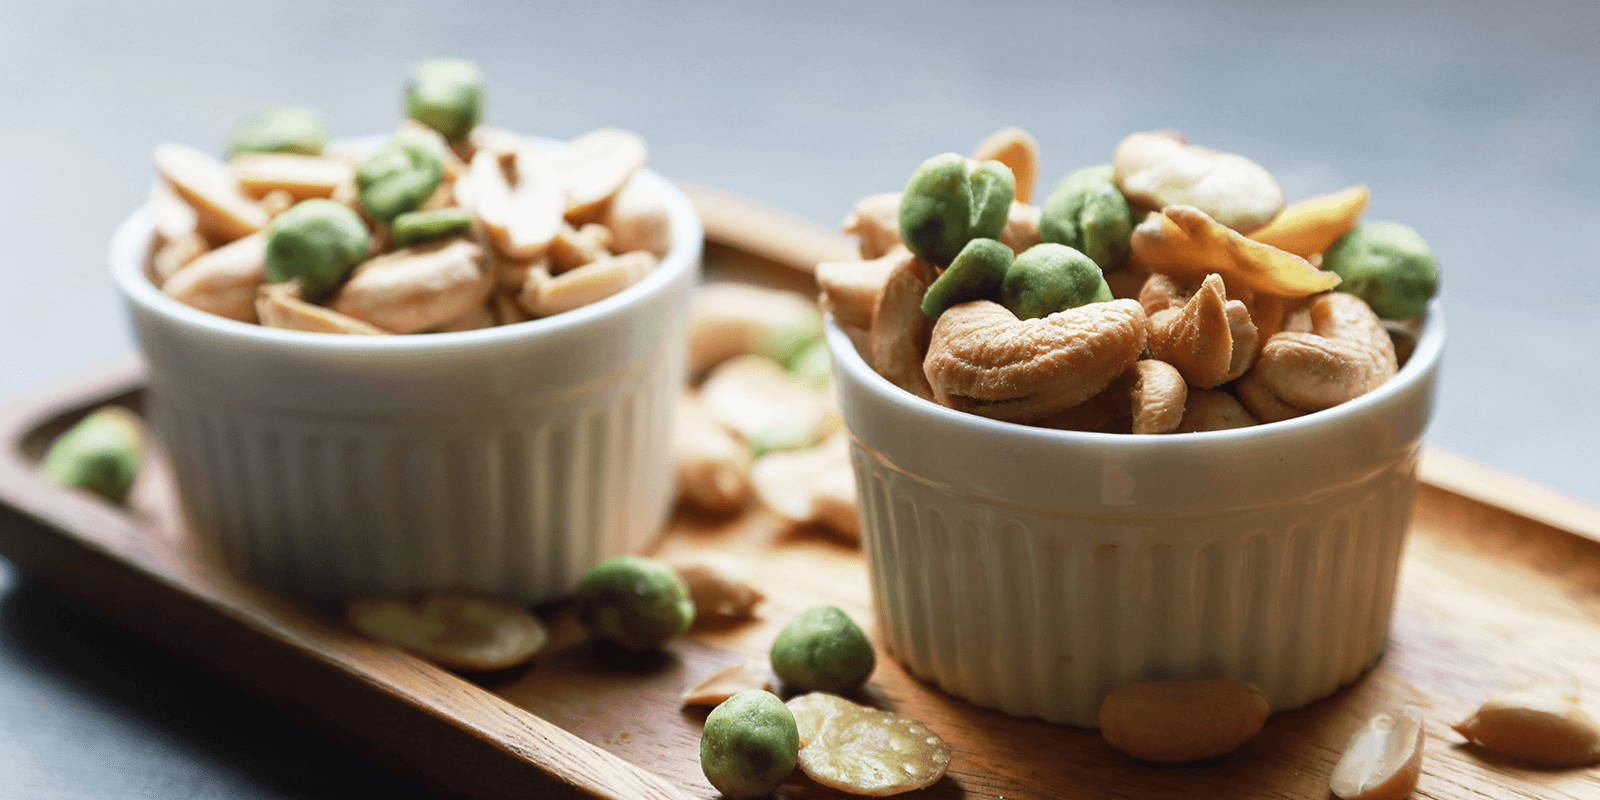 Two bowls of mixed nuts.